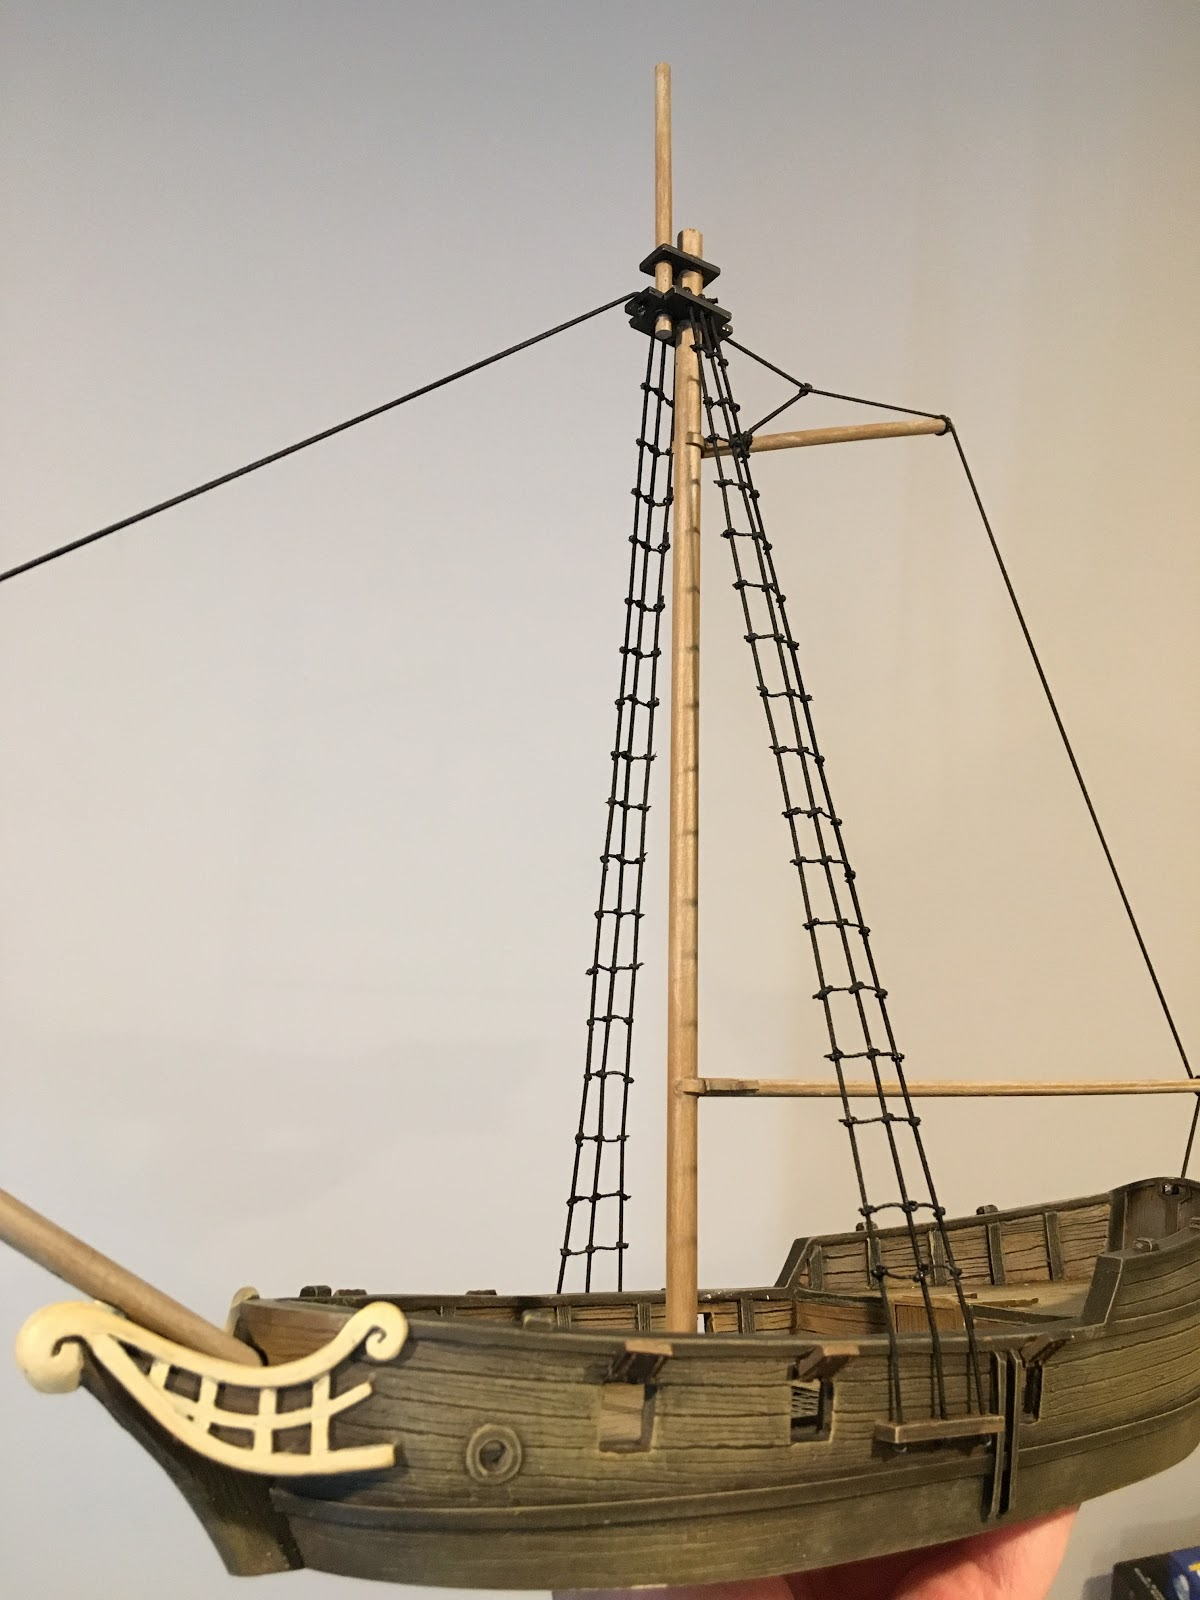 How to Rig a Model Ship